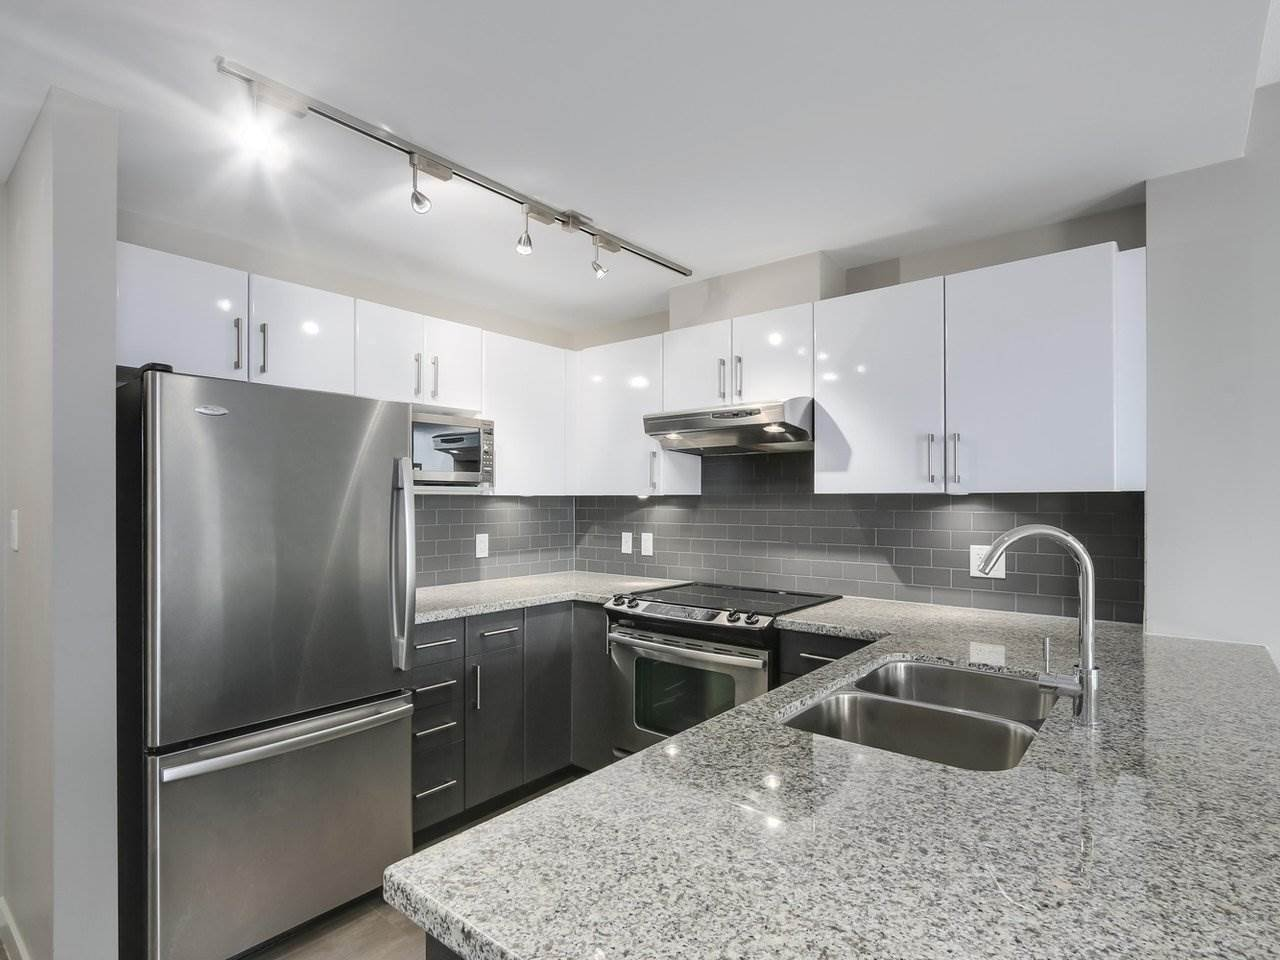 """Main Photo: 807 14 BEGBIE Street in New Westminster: Quay Condo for sale in """"INTERURBAN"""" : MLS®# R2265140"""